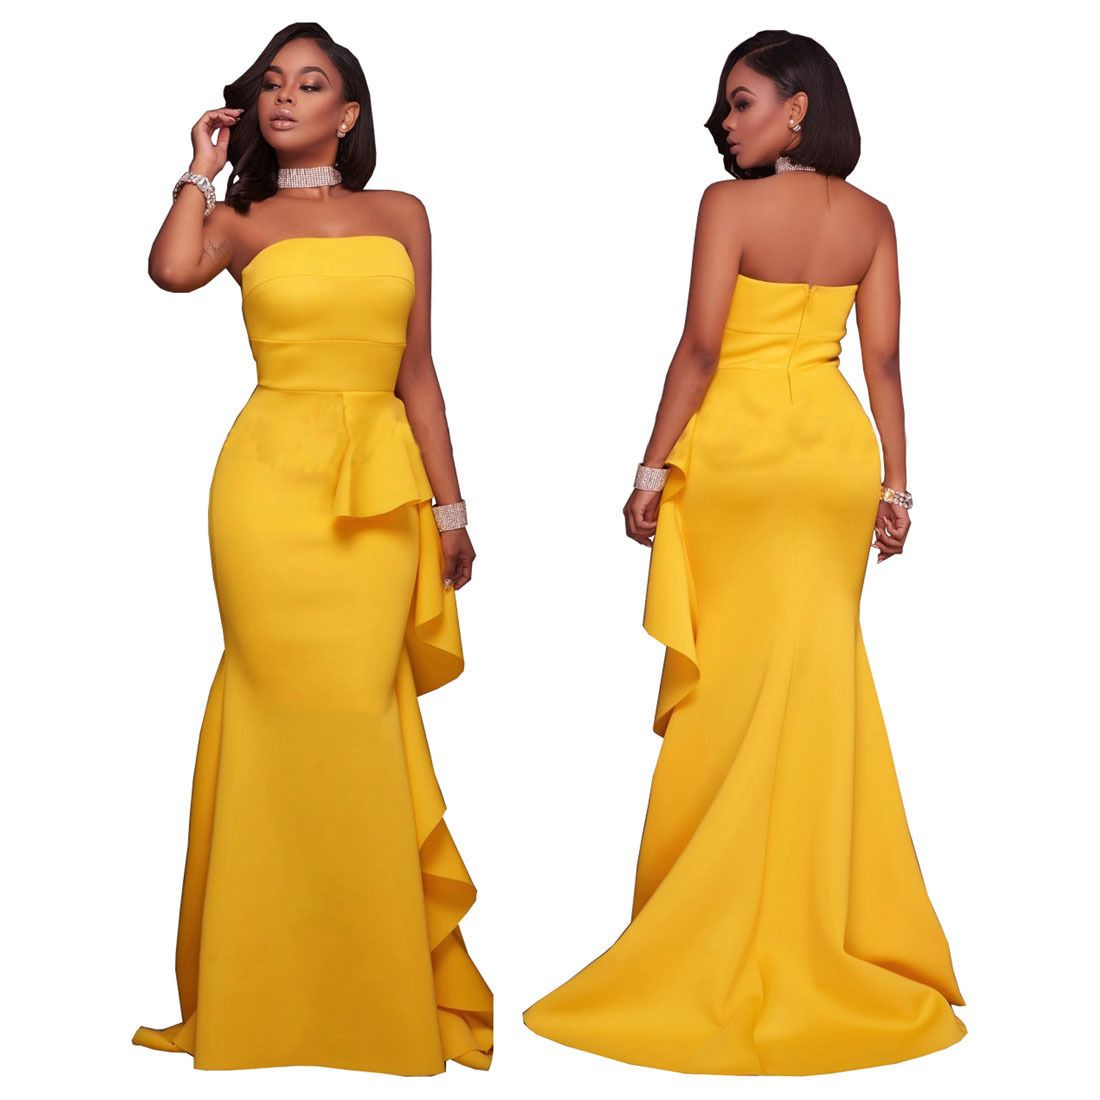 Formal dresses for summer wedding  Long Mermaid Evening Formal Party Cocktail Bridesmaid Prom Gown